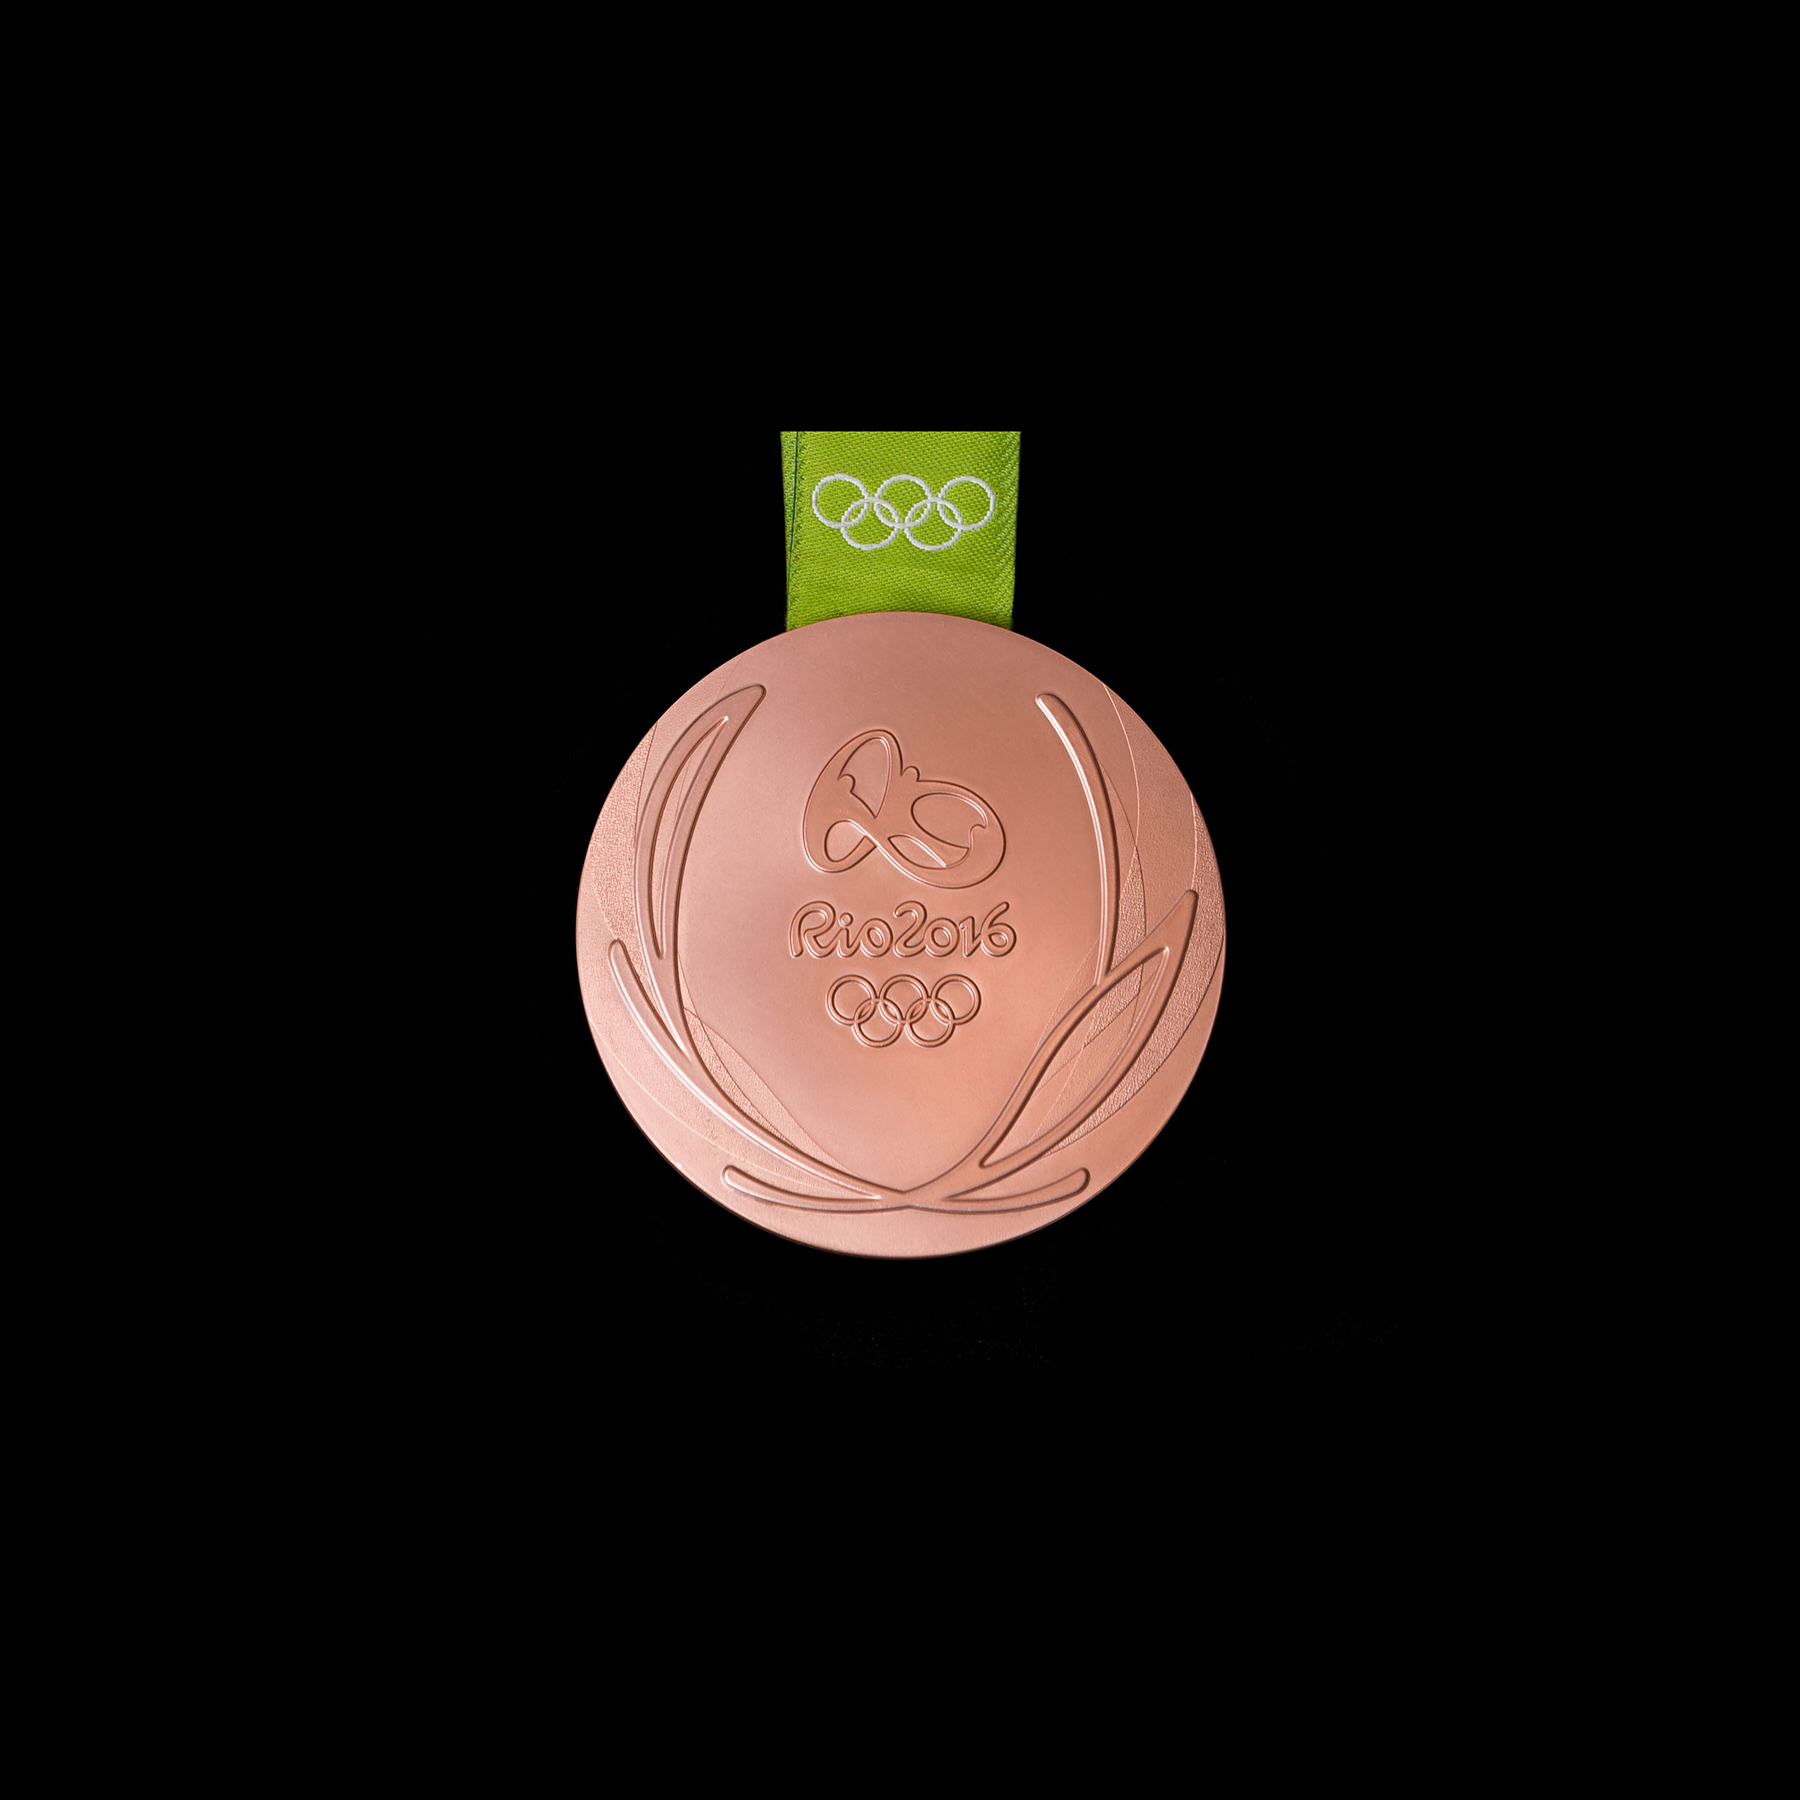 Olympic bronze medal, Rio 2016